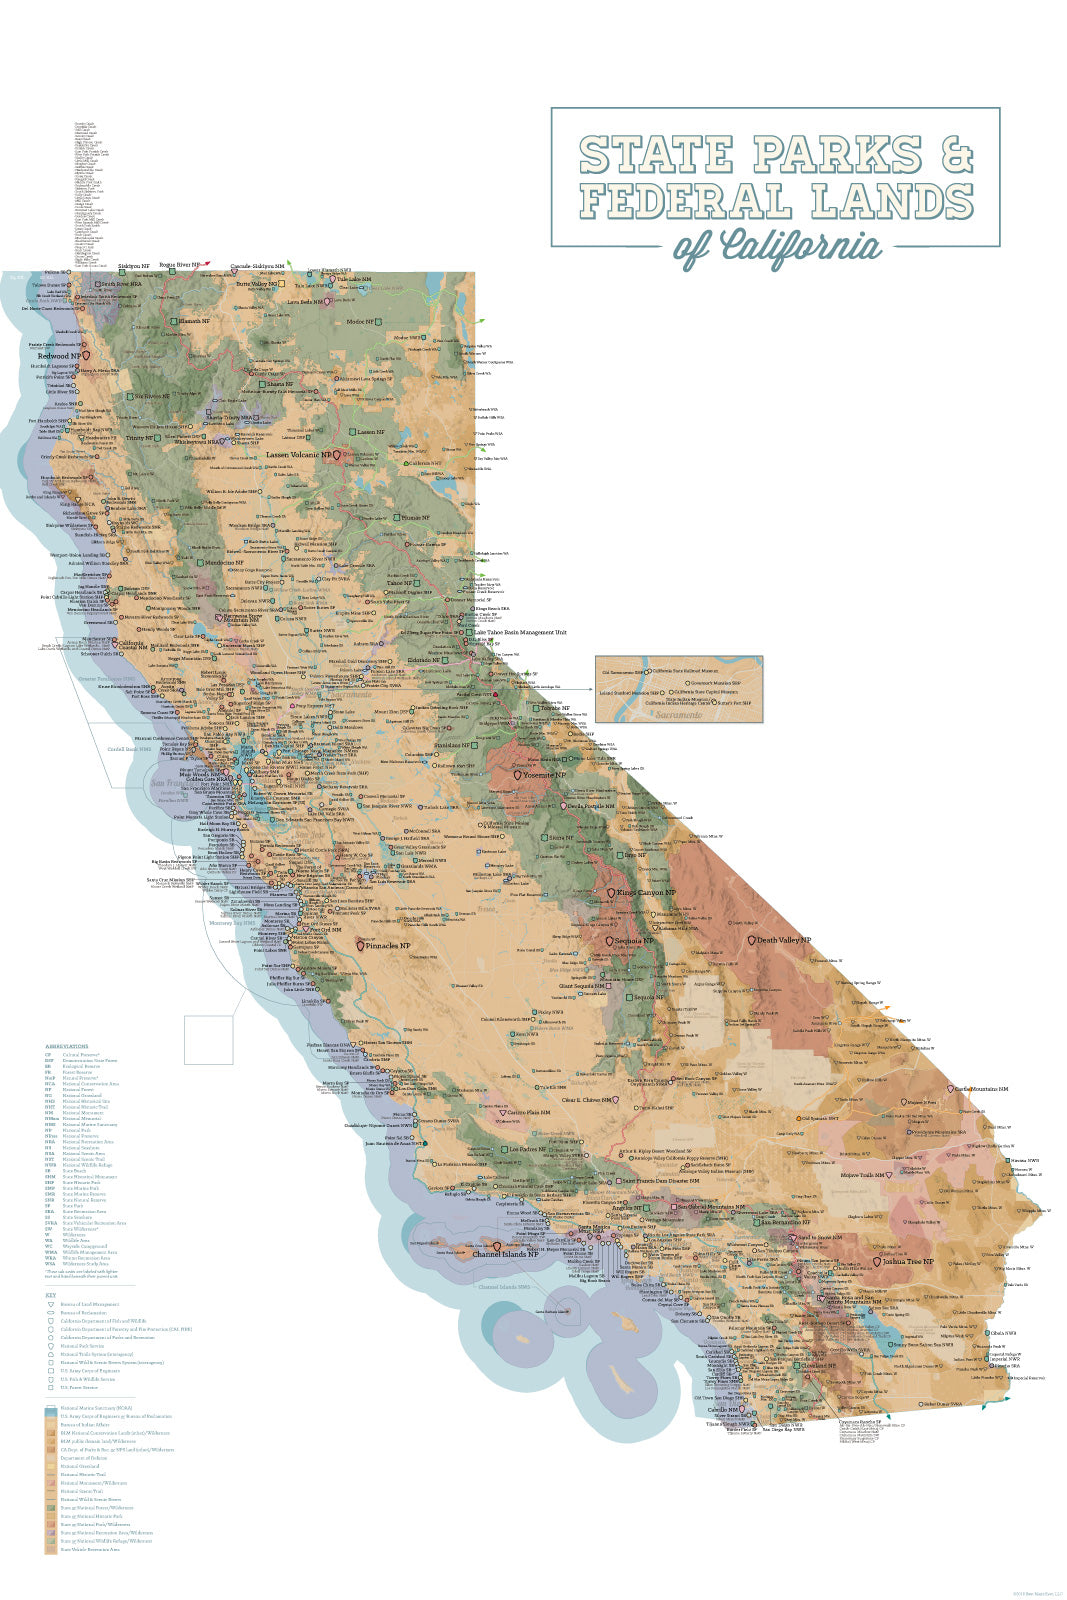 California State Parks & Federal Lands Map 24x36 Poster